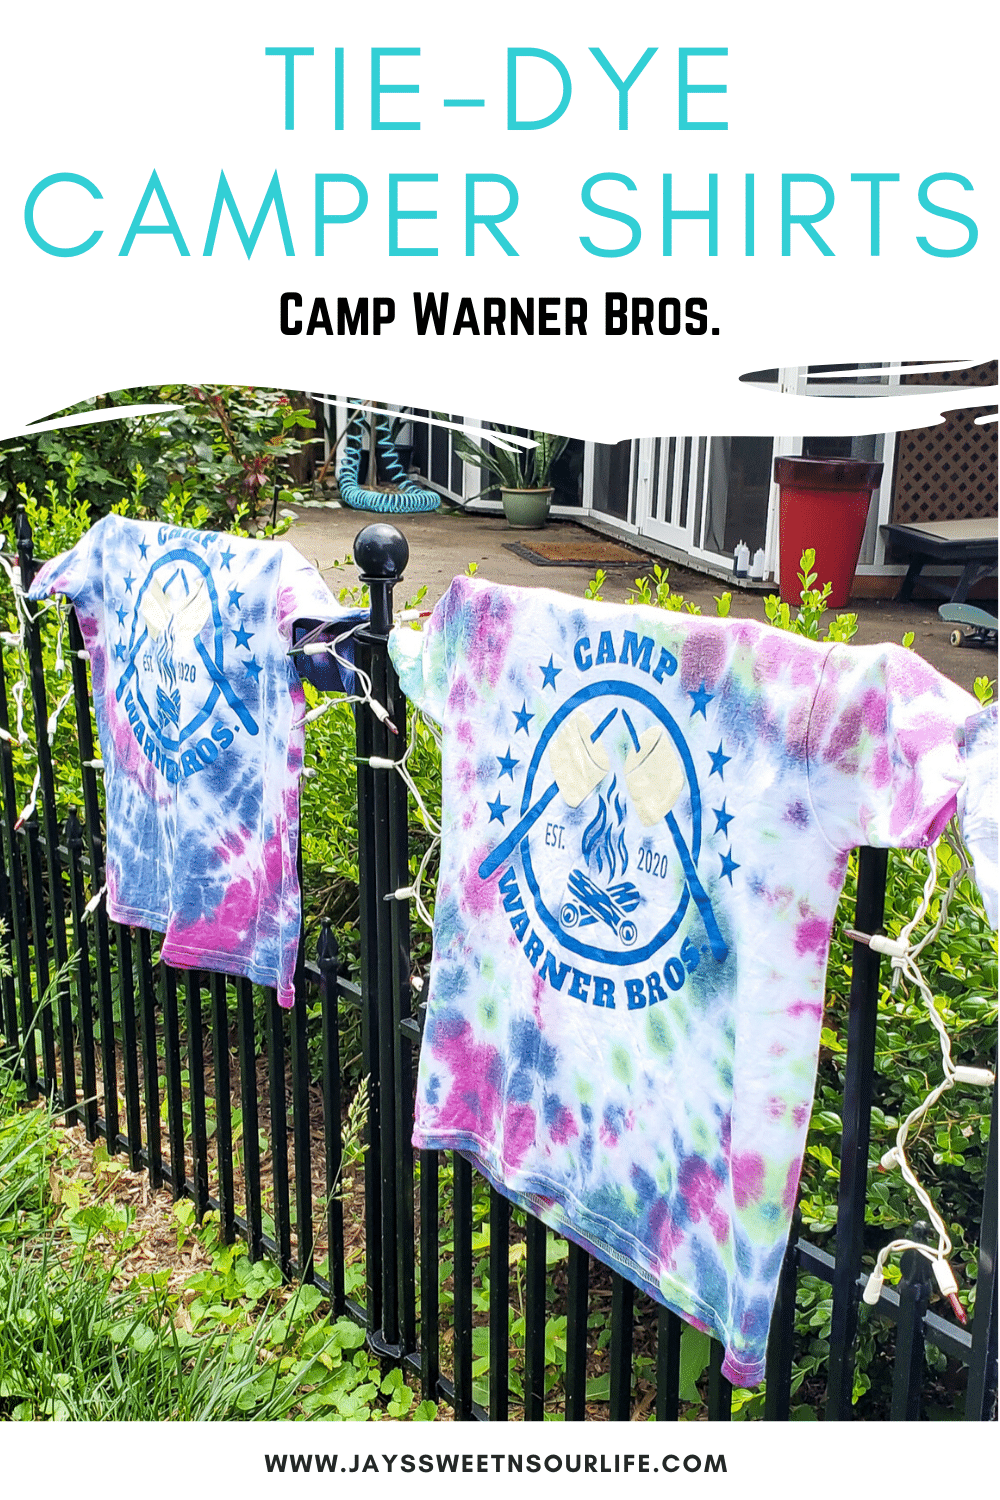 Tie-Dye Camper Shirts Camp Warner Bros. Join us as we adventure through 8 weeks of Virtual Camp Warner Bros. Each week will feature a new fun family friendly activity and a Warner Bros. Show or Movie. This week featured a Camper Shirt Tie-Dye activity.